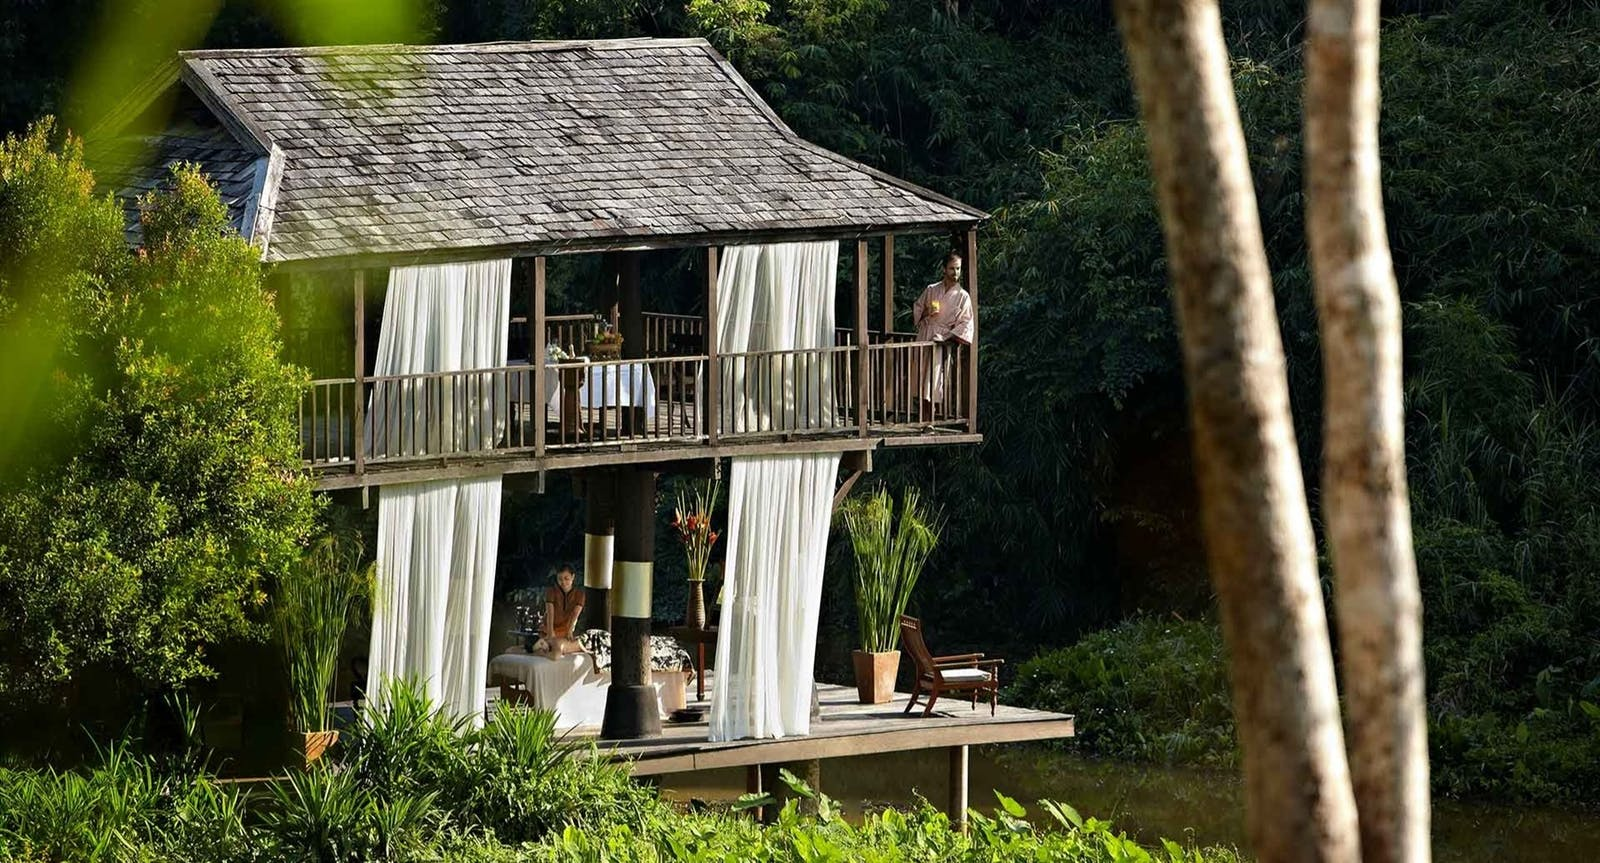 Spa by Nature at Anantara Golden Triangle Elephant Camp Resort, Chiang Rai, Thailand, Asia